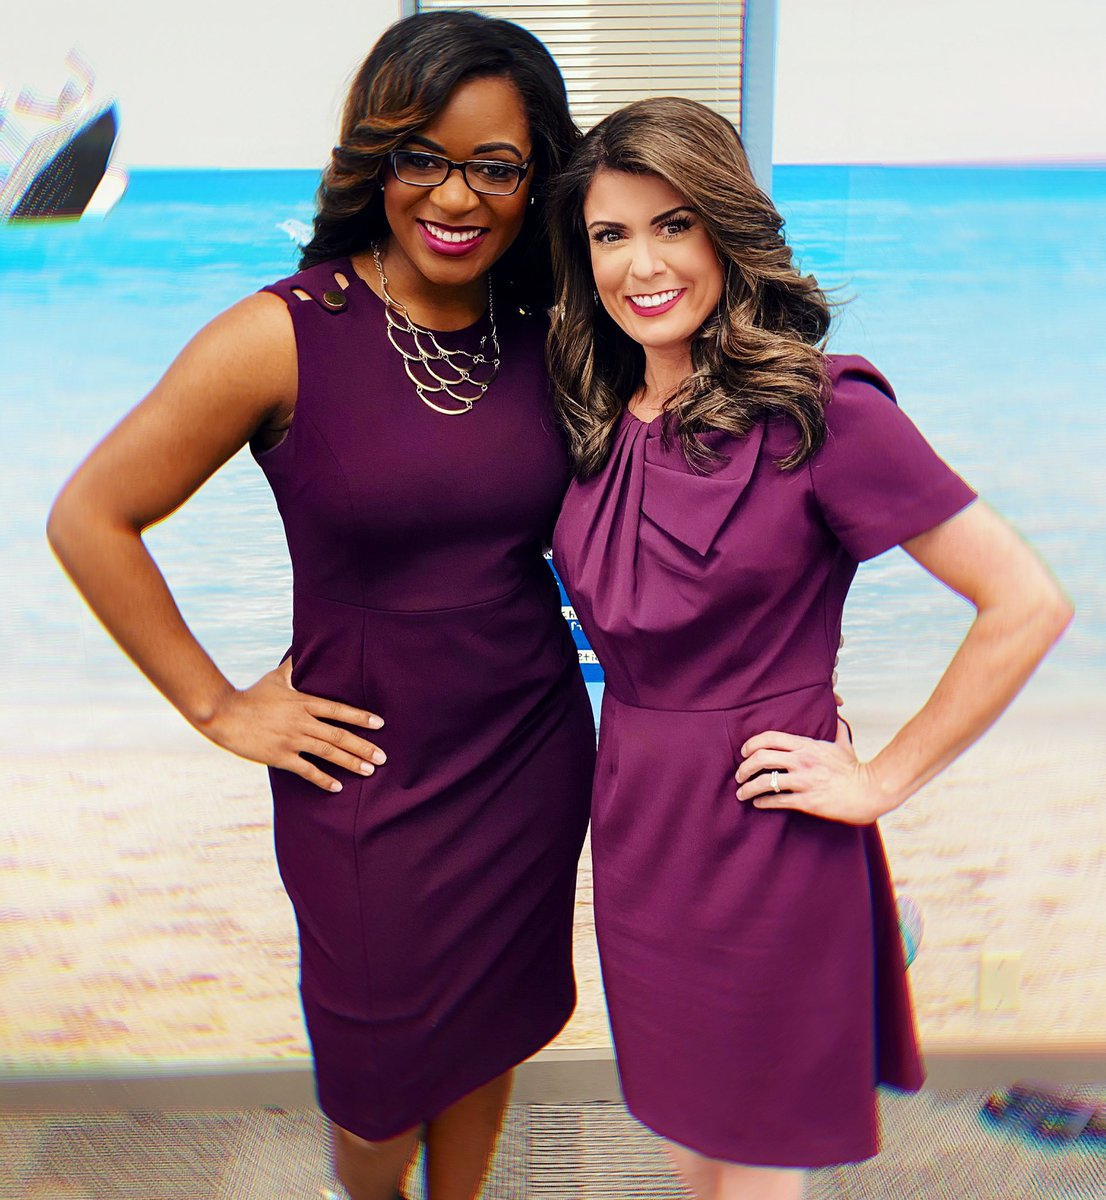 Your daily dose of purple ☺️💜 . . . #smile #purple #wematch #twins #fashion #color #friends #coworkers #twinning #matching #matchymatchy #matchingdresses